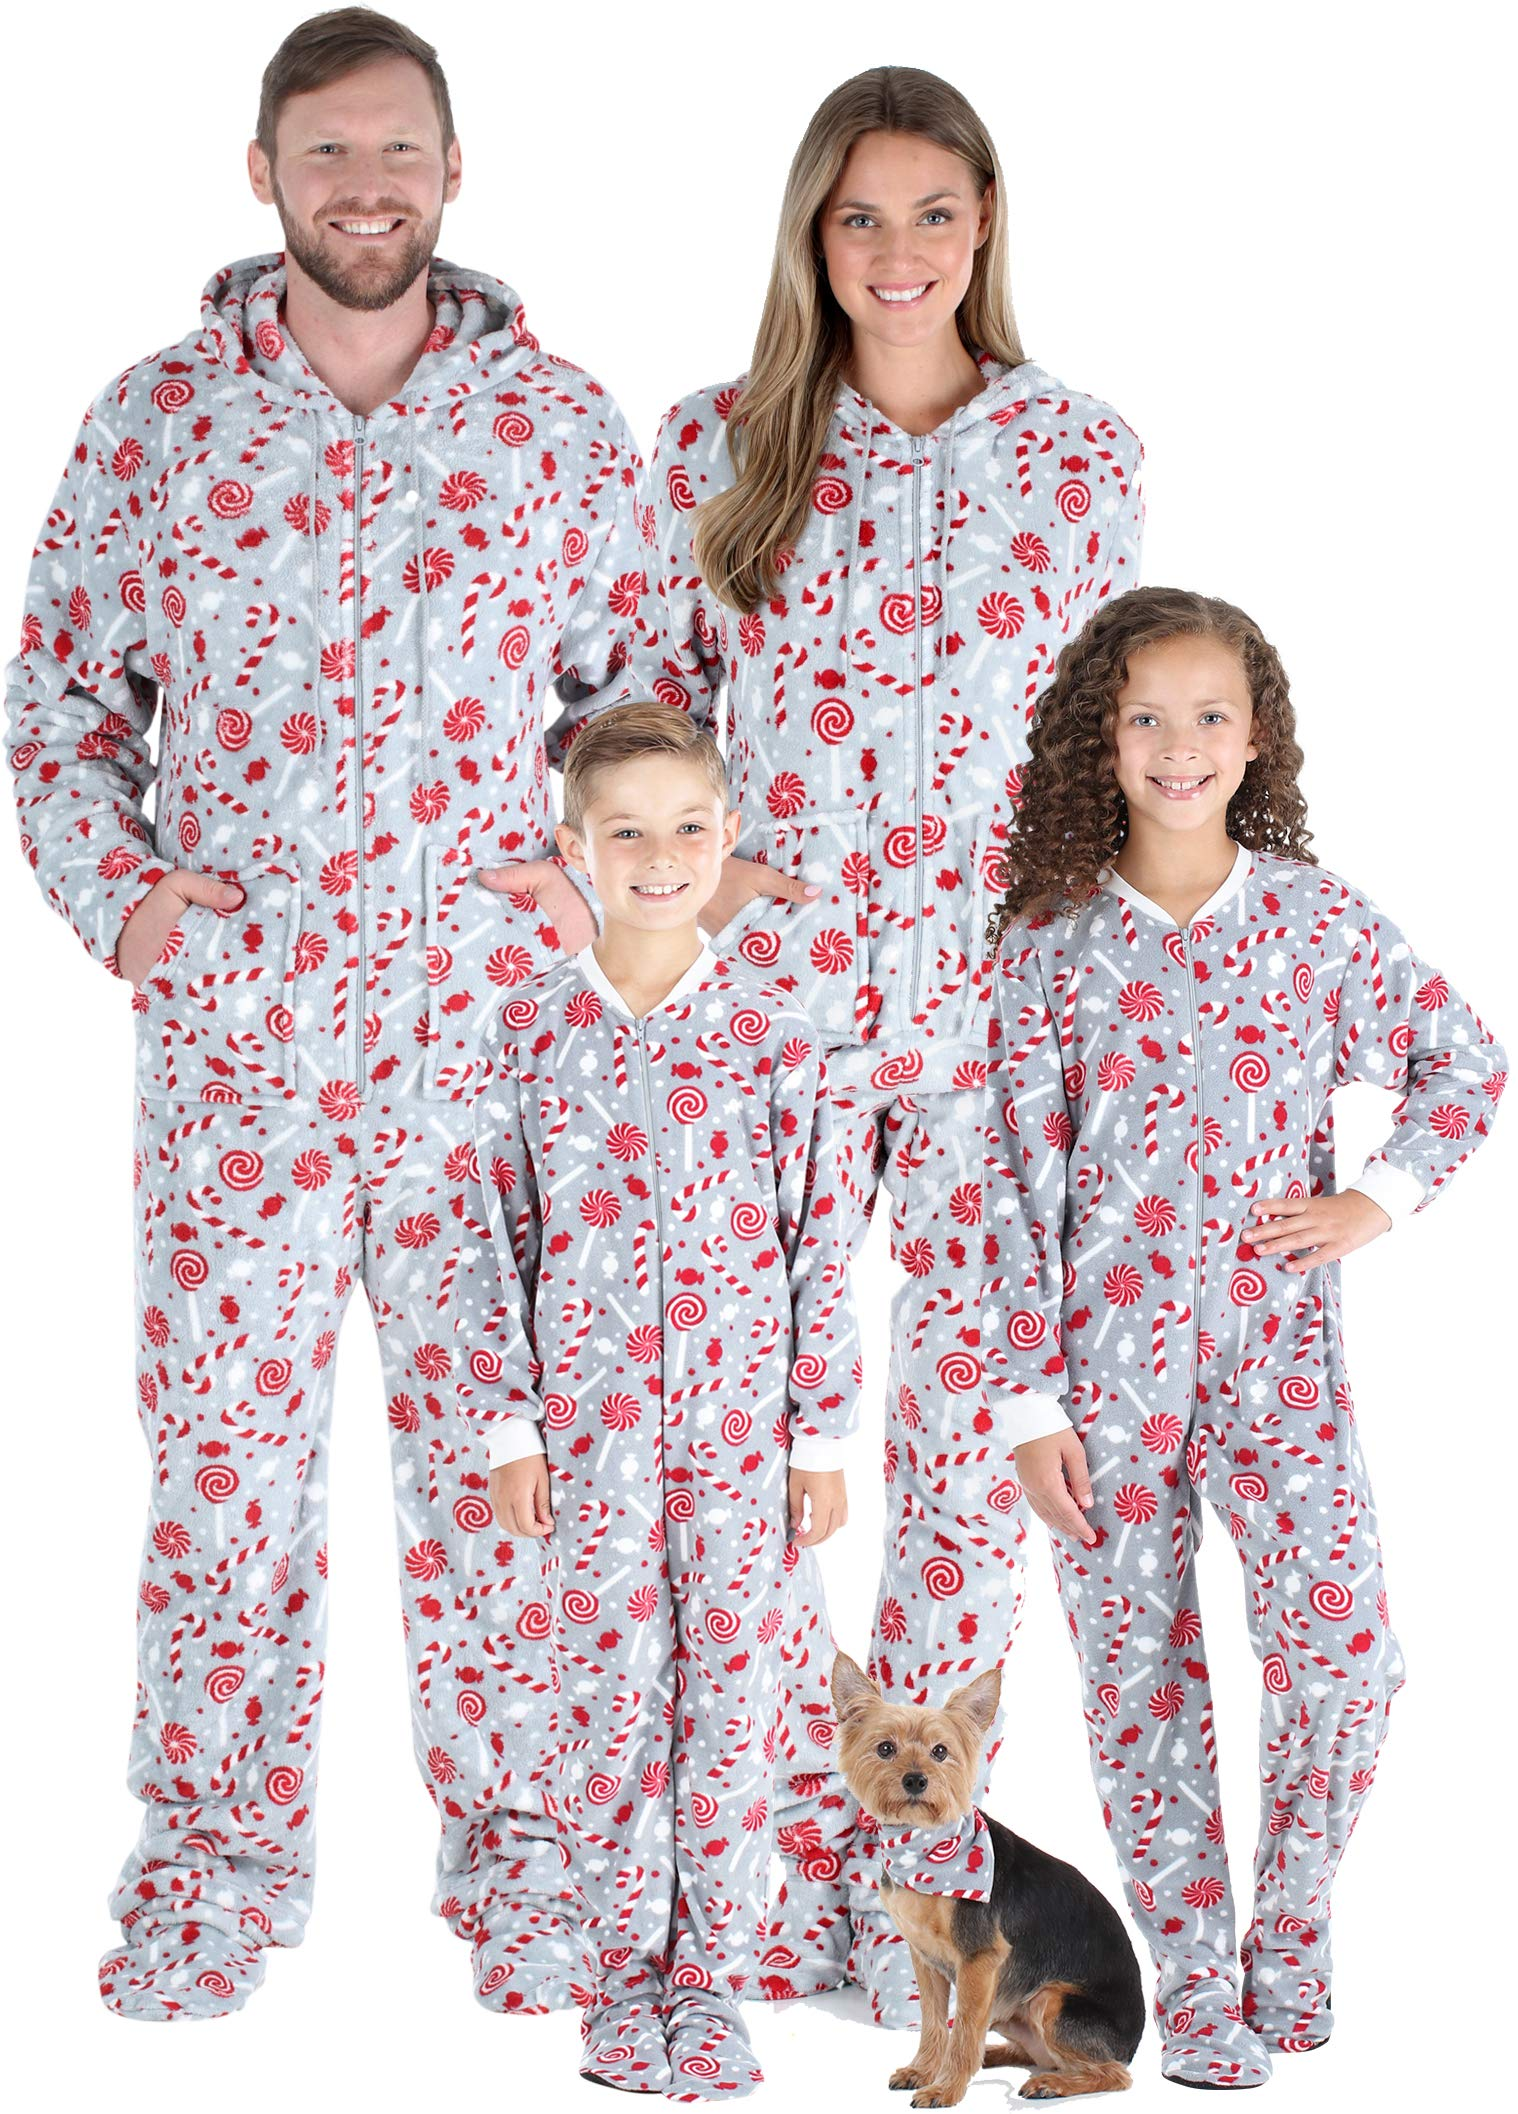 SleepytimePJs Matching Family Christmas Pajama Sets, Snowflake Footed Onesies